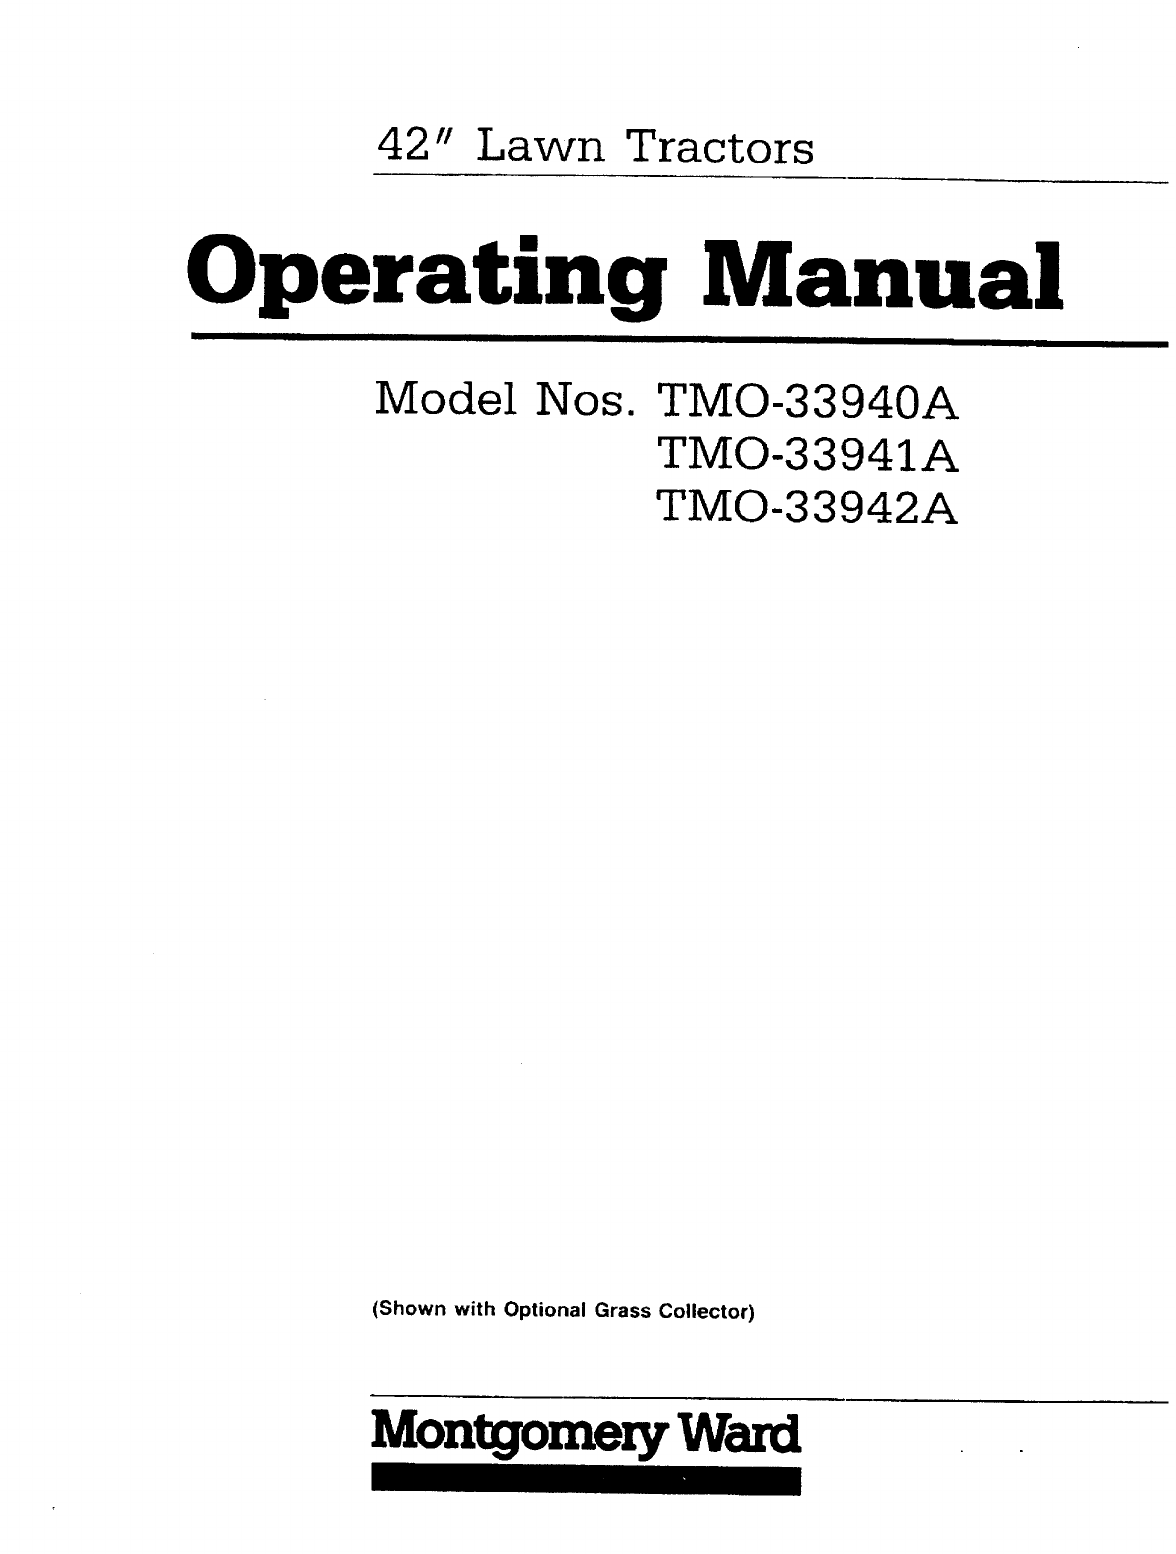 27d77770 d003 4f1e 9b84 85b0a5c91cbc bg1 montgomery ward lawn mower tmo 33942a user guide manualsonline com Montgomery Ward Tractor Manual at n-0.co